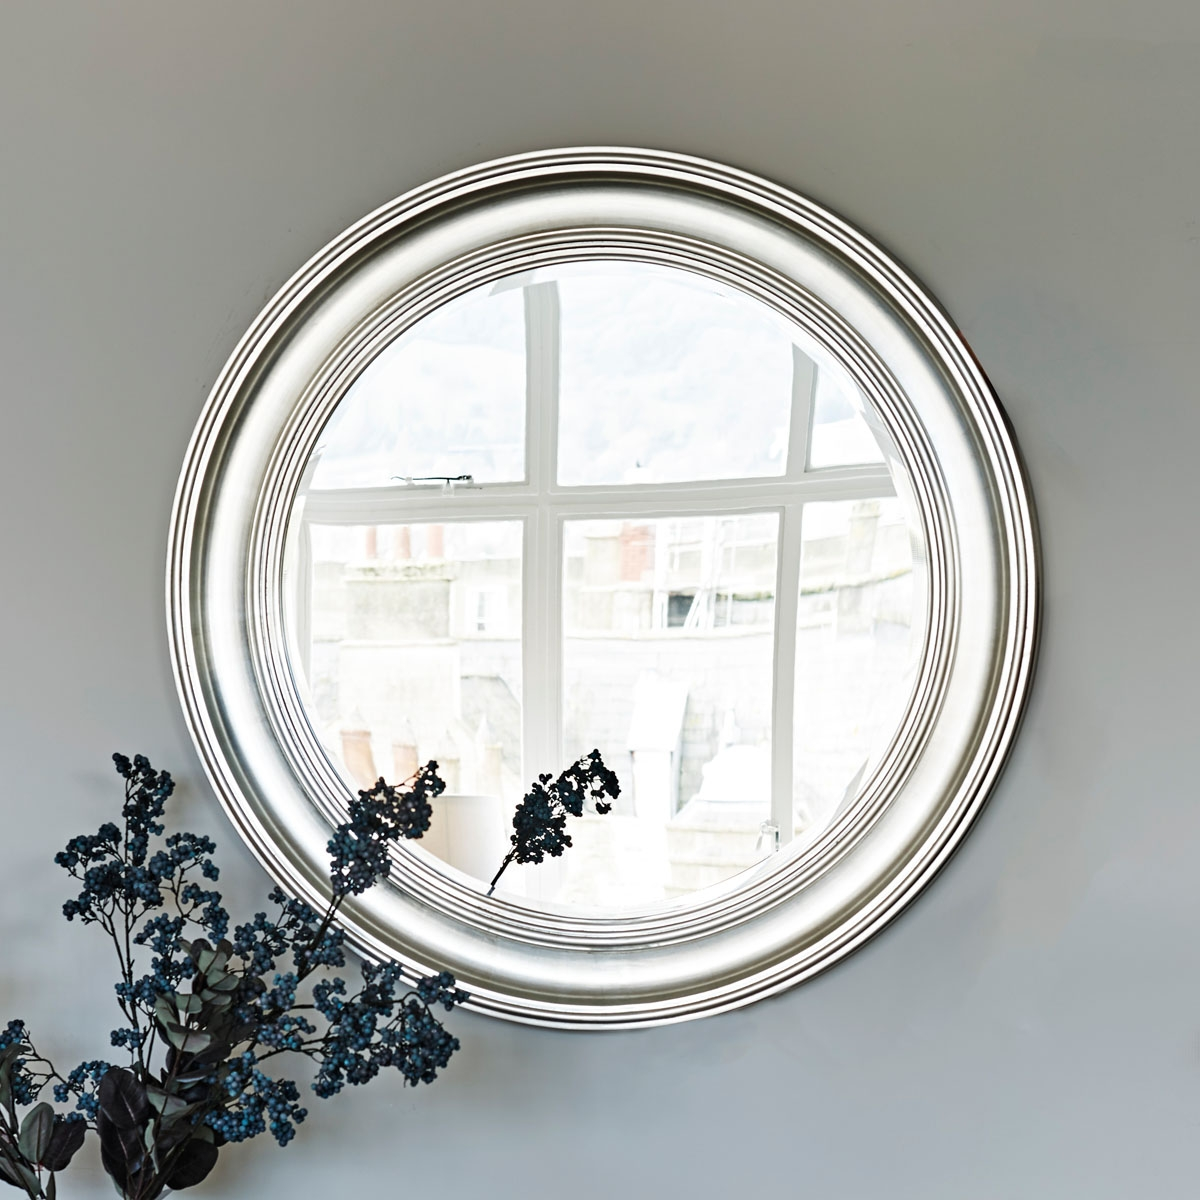 Large Round Silver Wall Mirror Large Round Silver Wall Mirror large round silver mirror 52 fascinating ideas on round moroccan 1200 X 1200